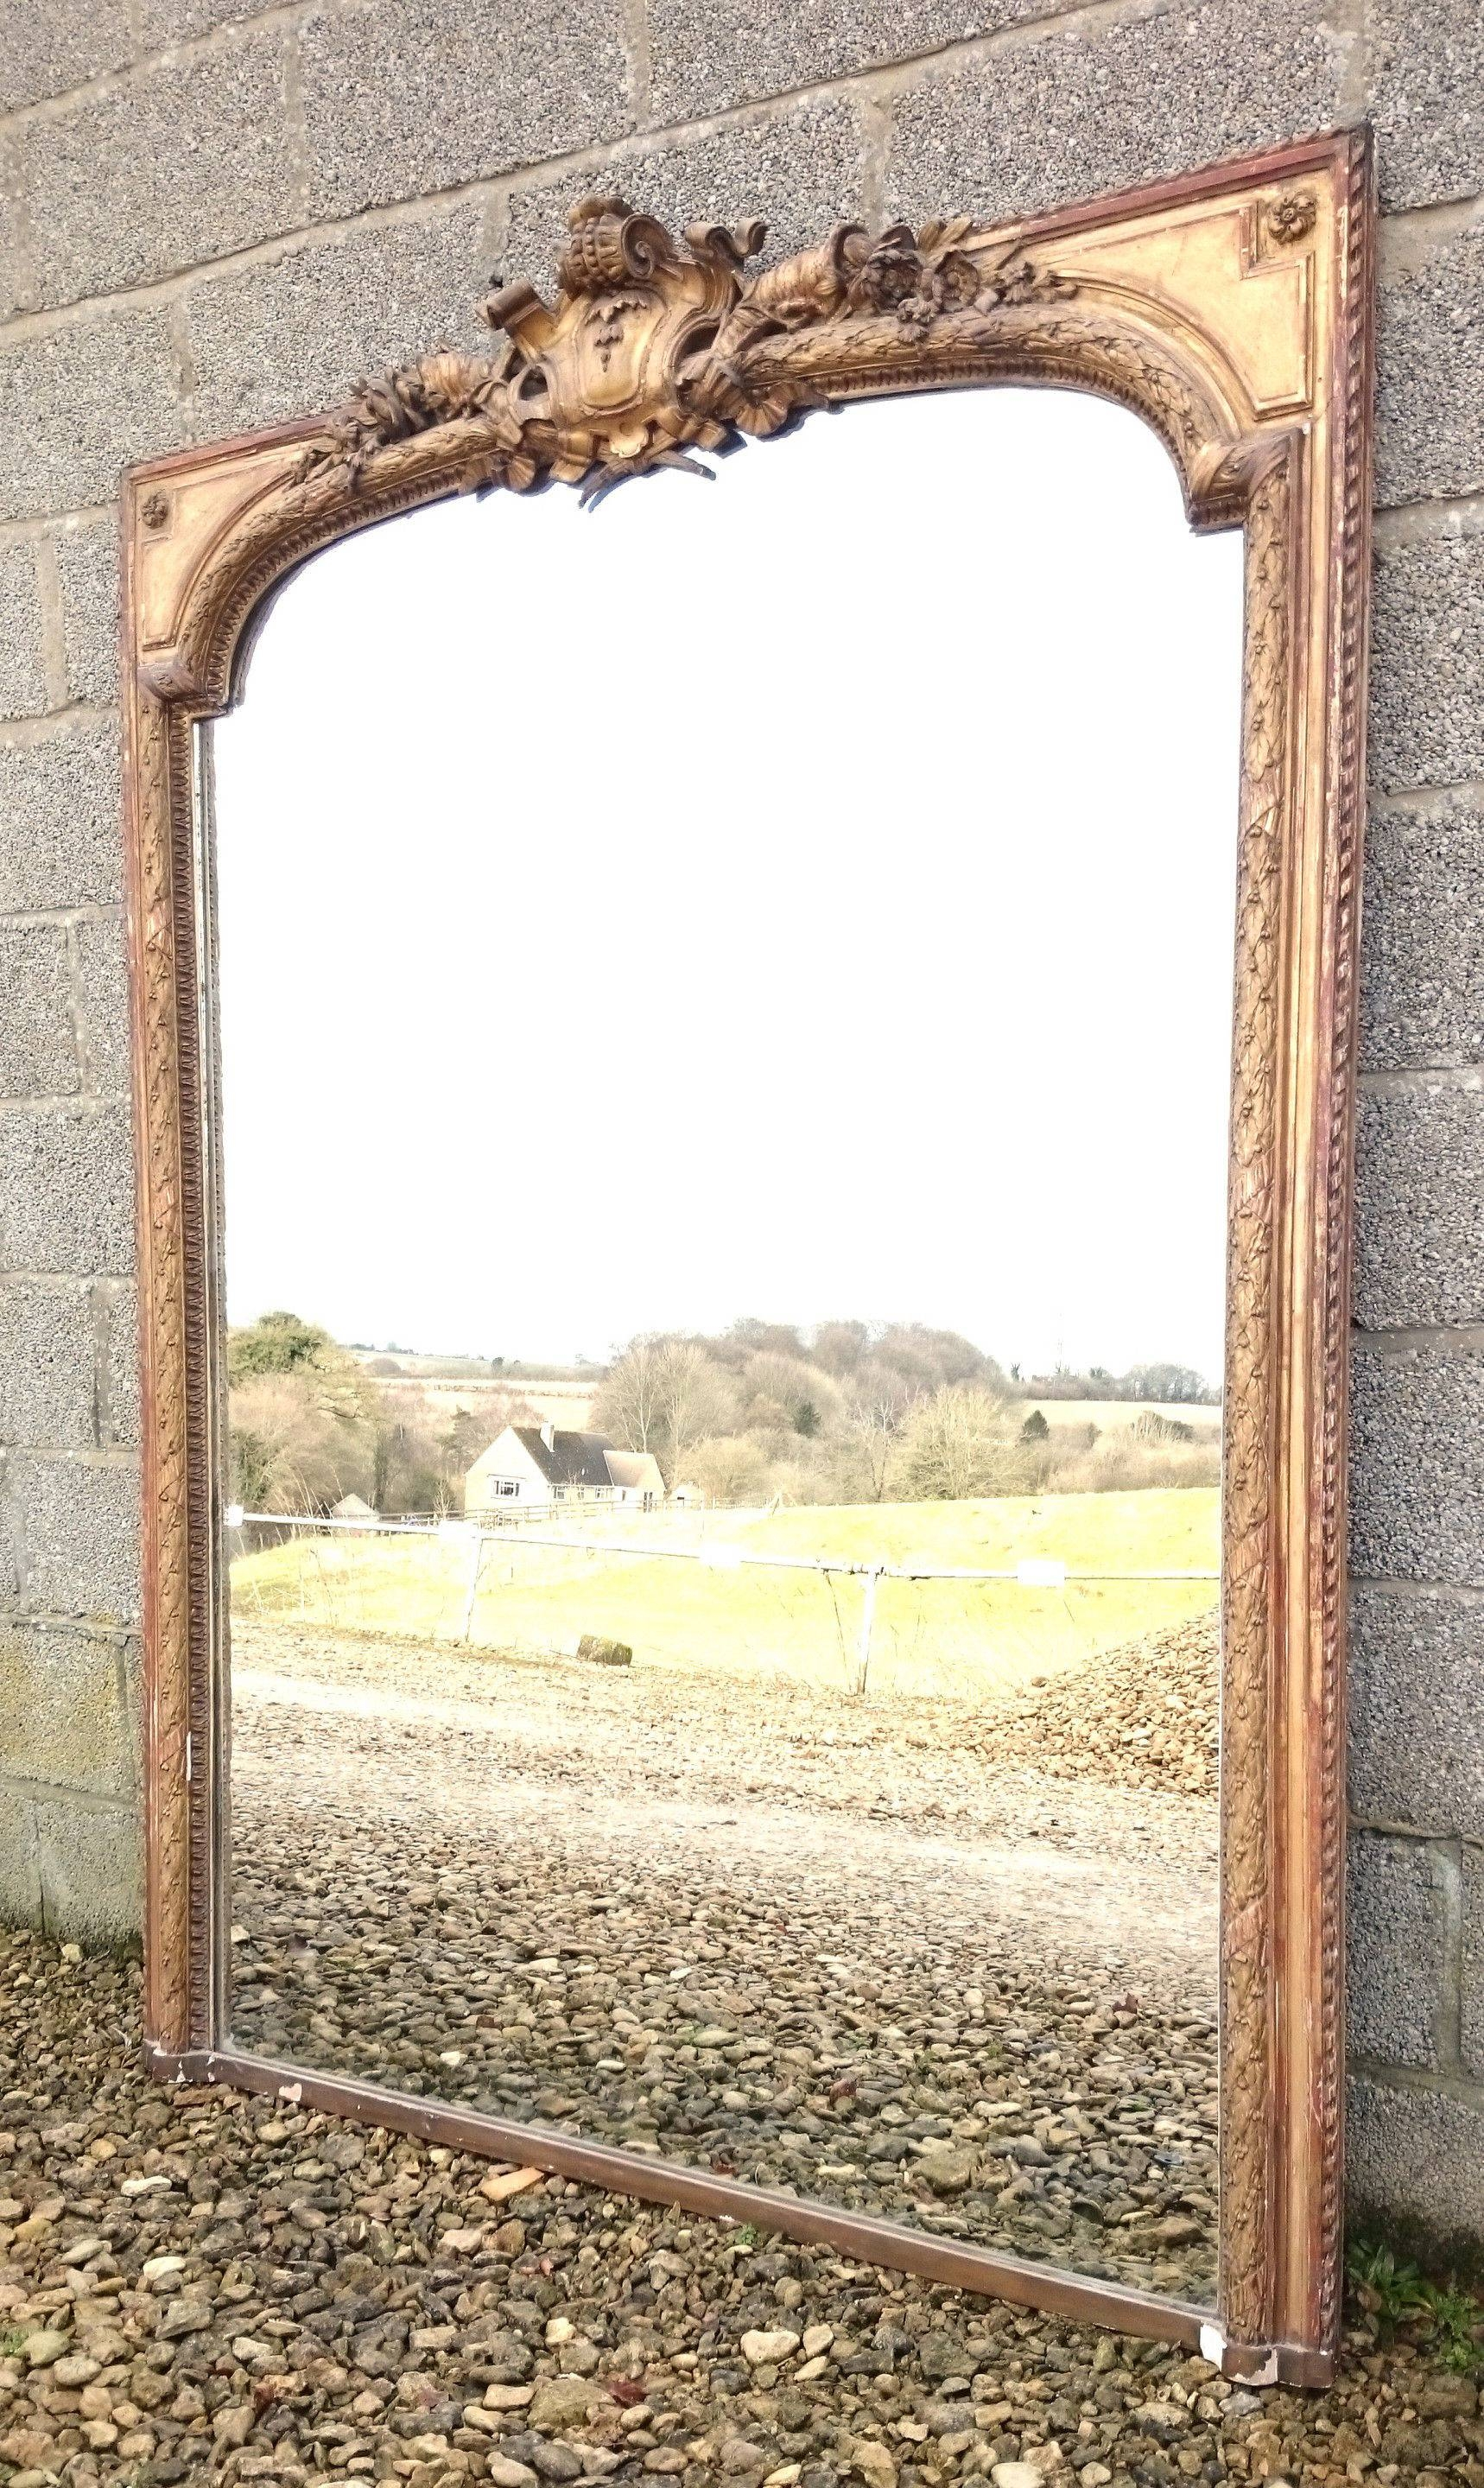 Large Antique Overmantle Mirror (C. 1850 United Kingdom) From regarding Antique Overmantle Mirrors (Image 10 of 15)